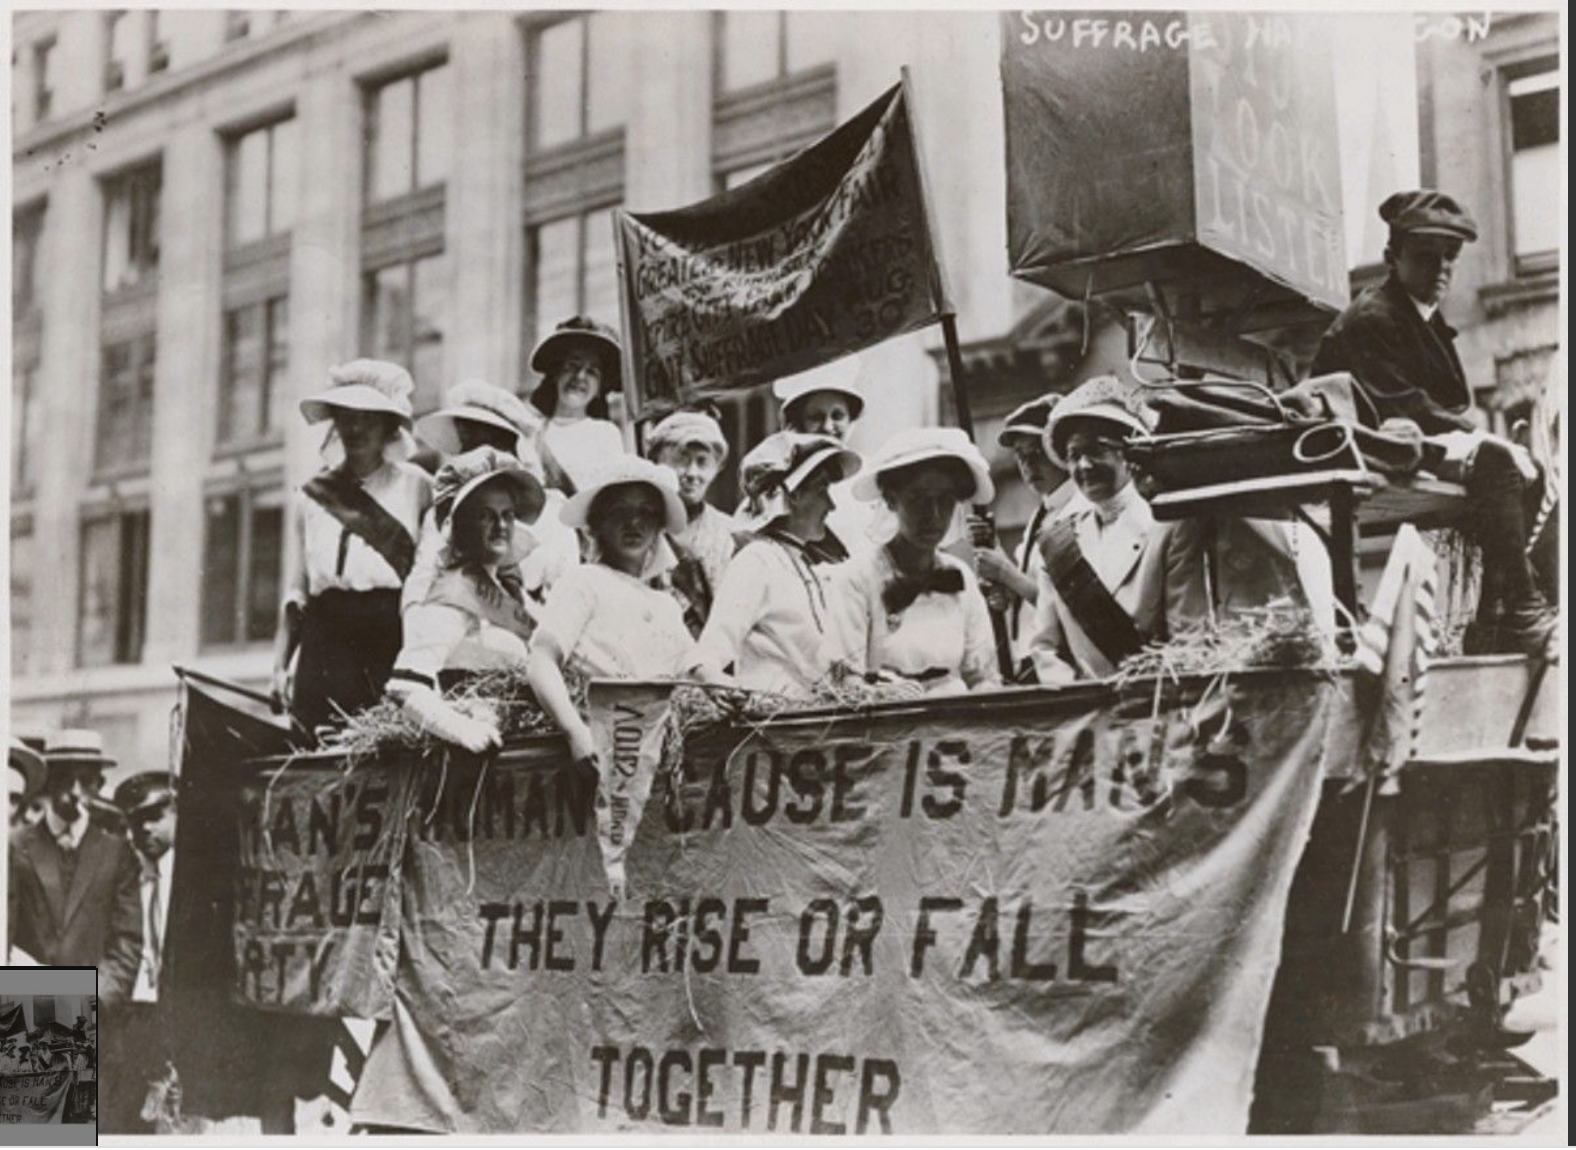 Extending Suffrage to Women